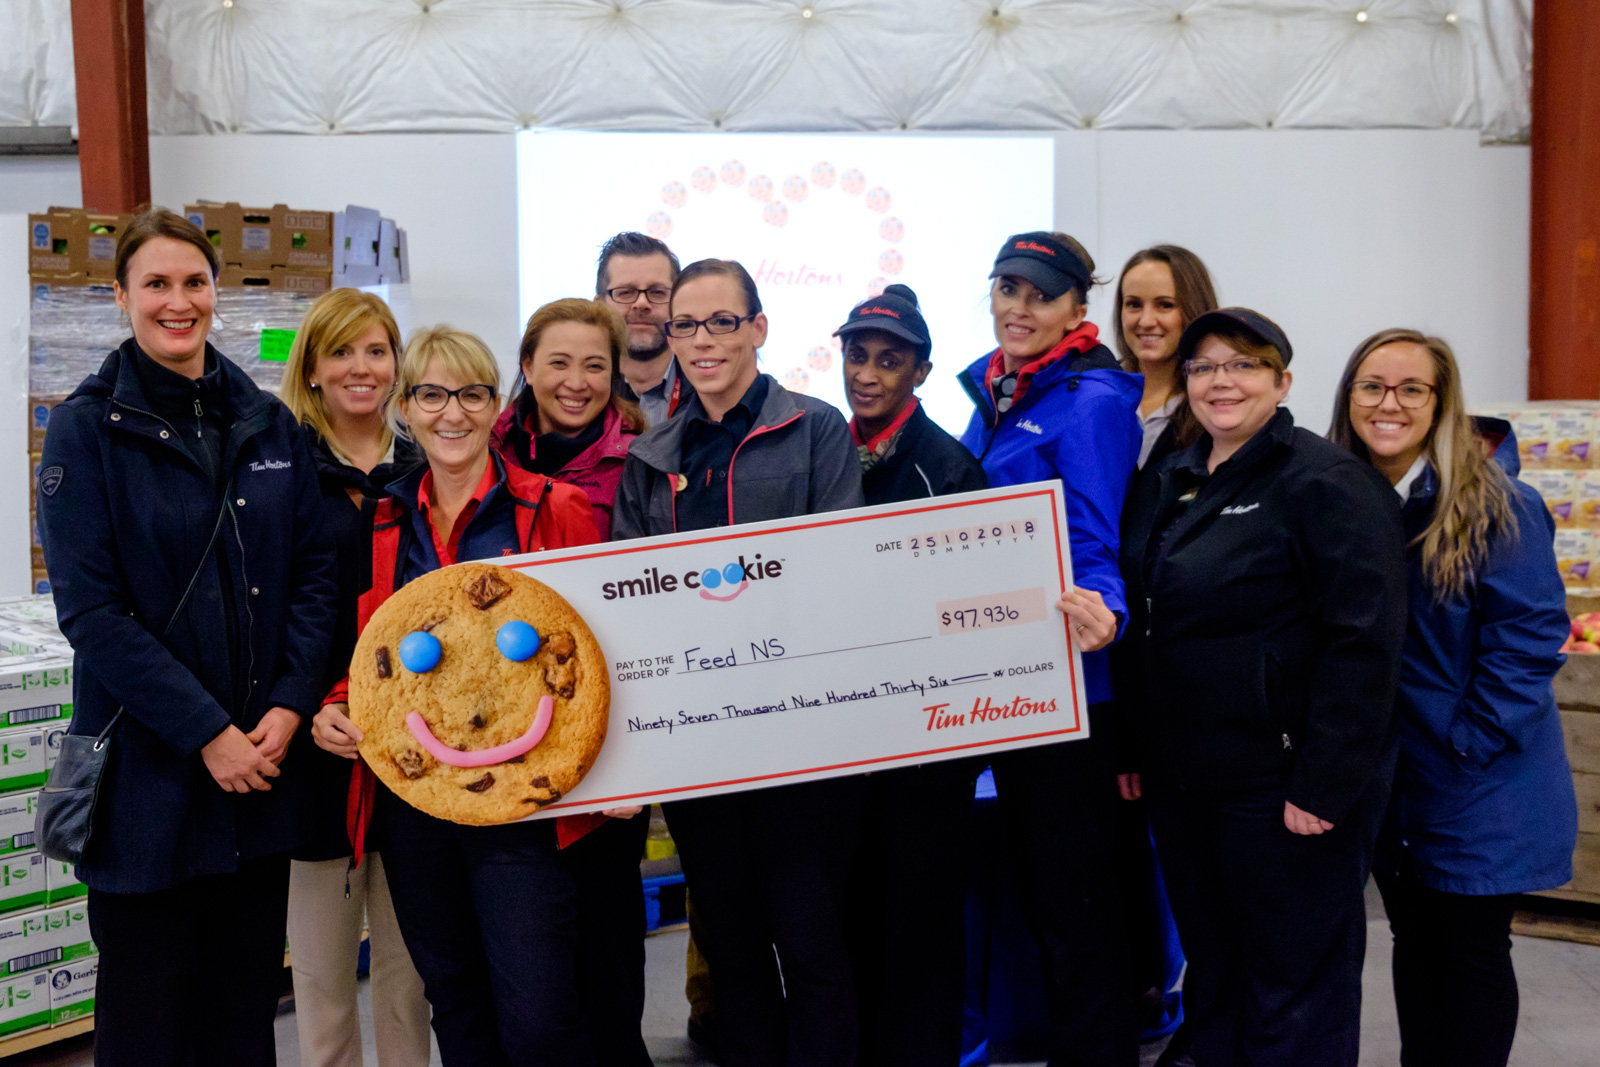 Tim Hortons staff with a big cheque from the Smile Cookie campaign